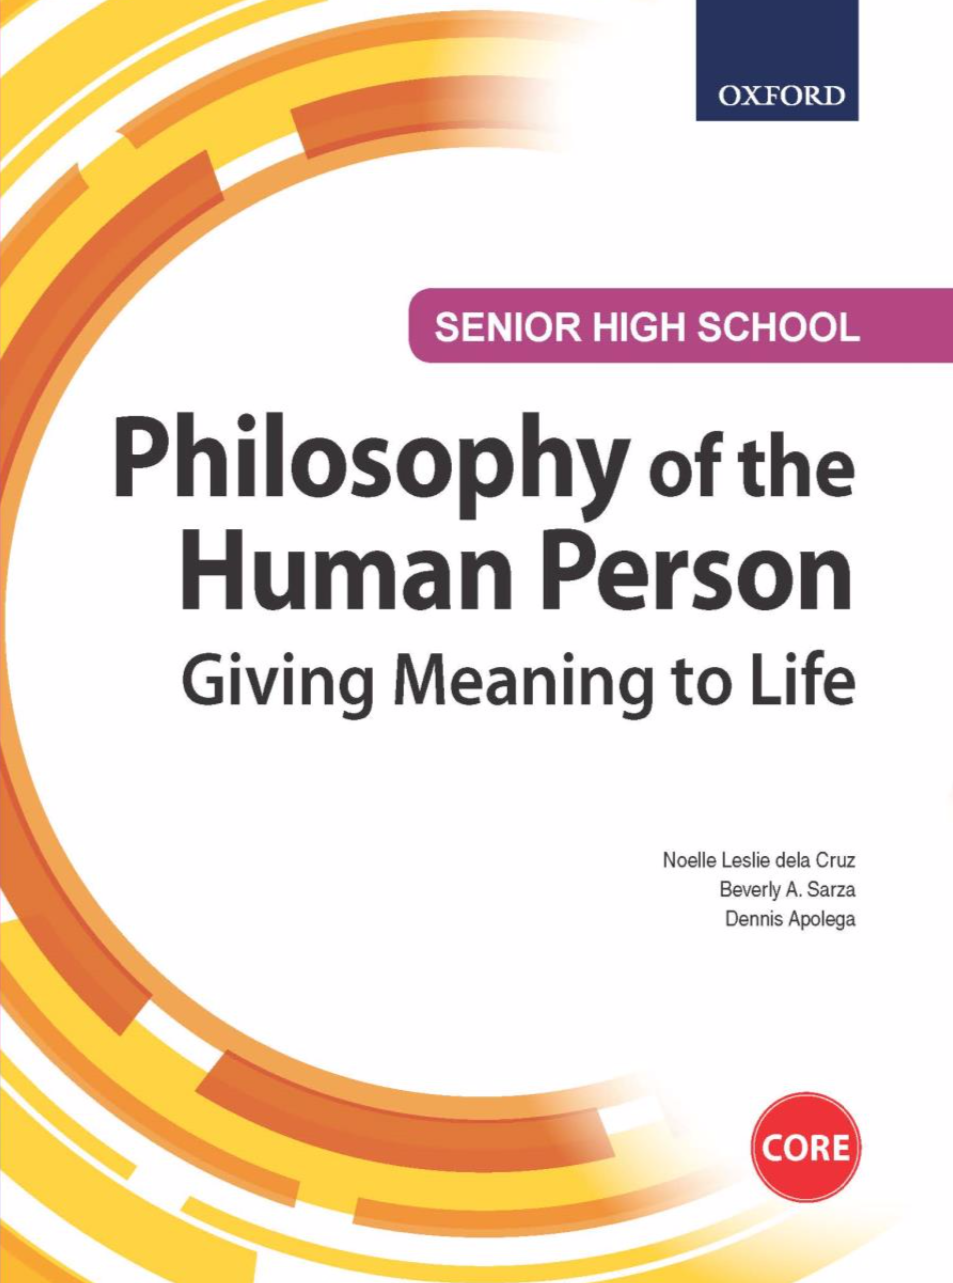 SHS Philosophy of the Human Person